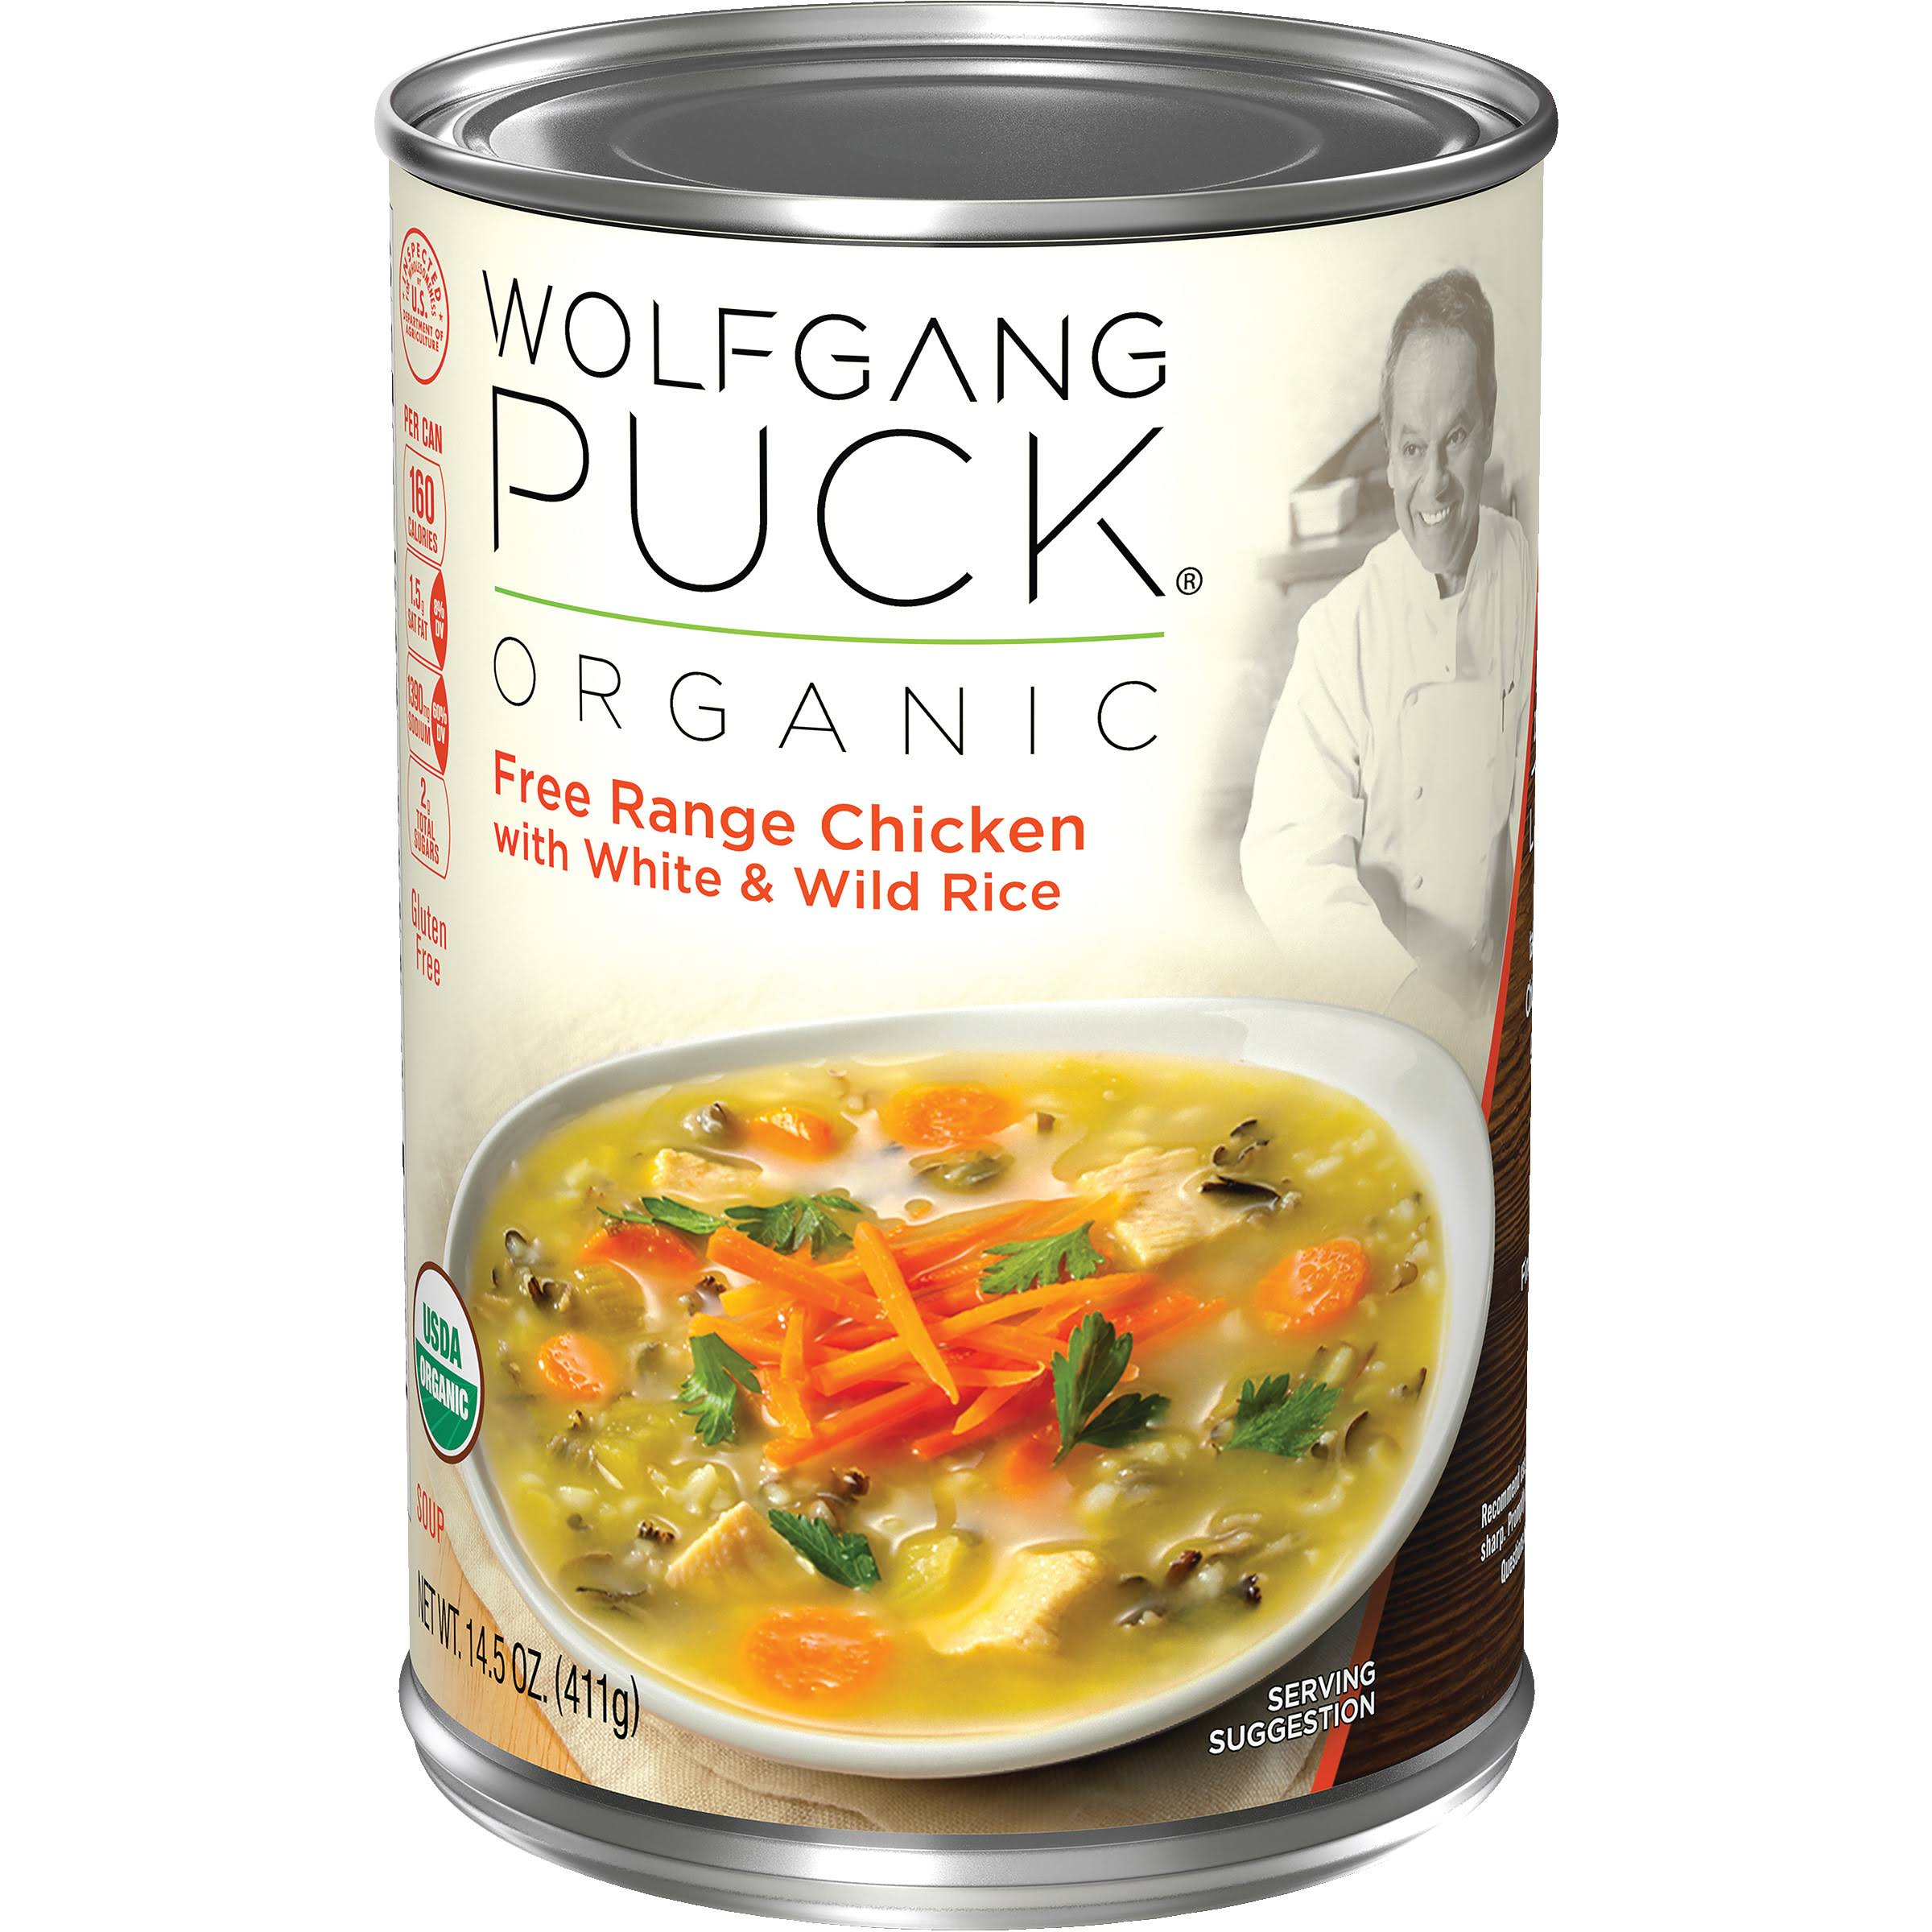 Wolfgang Puck Organic Chicken with White & Wild Rice Soup